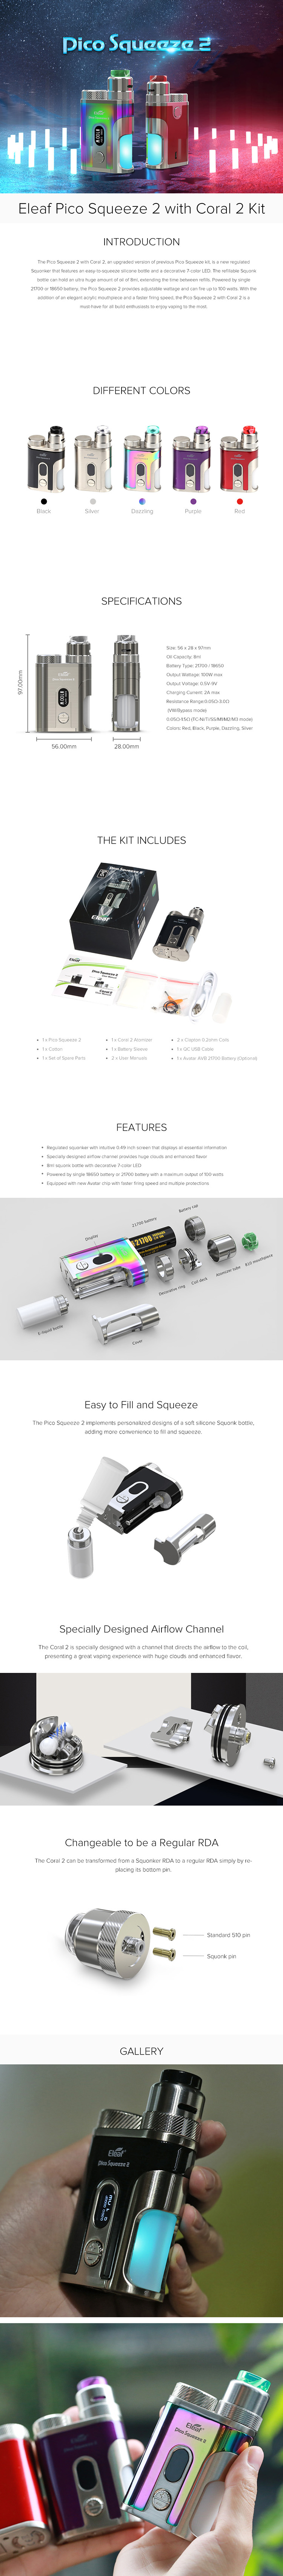 Eleaf Pico Squeeze 2 Squonk Kit with Coral 2 RDA